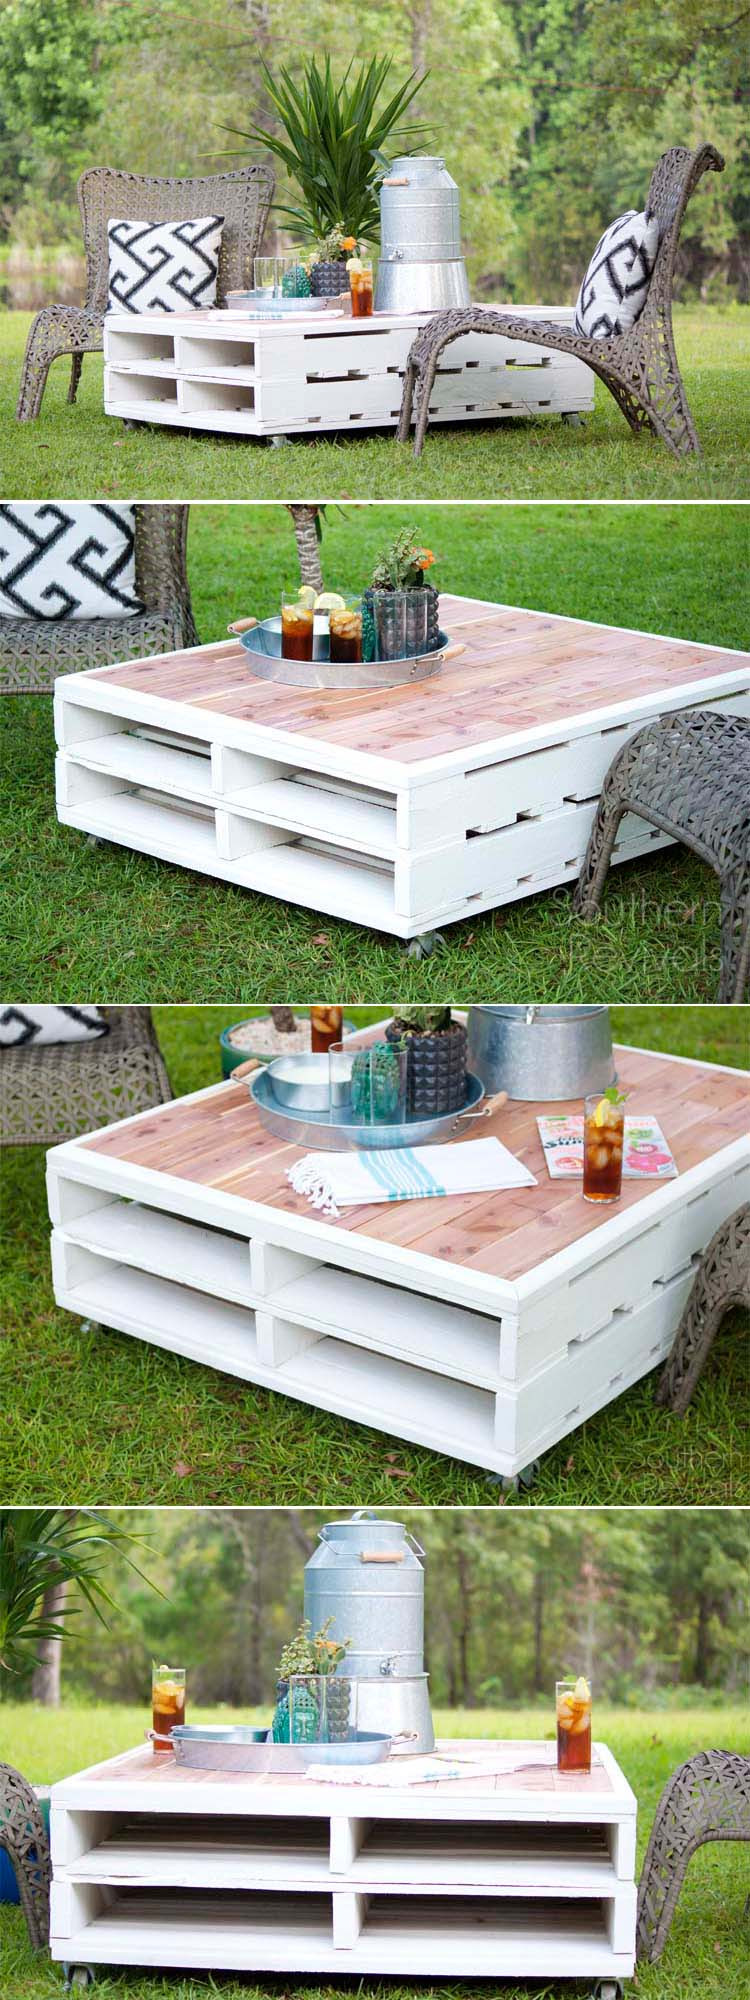 Best ideas about DIY Outdoor Furniture Ideas . Save or Pin 29 Best DIY Outdoor Furniture Projects Ideas and Designs Now.